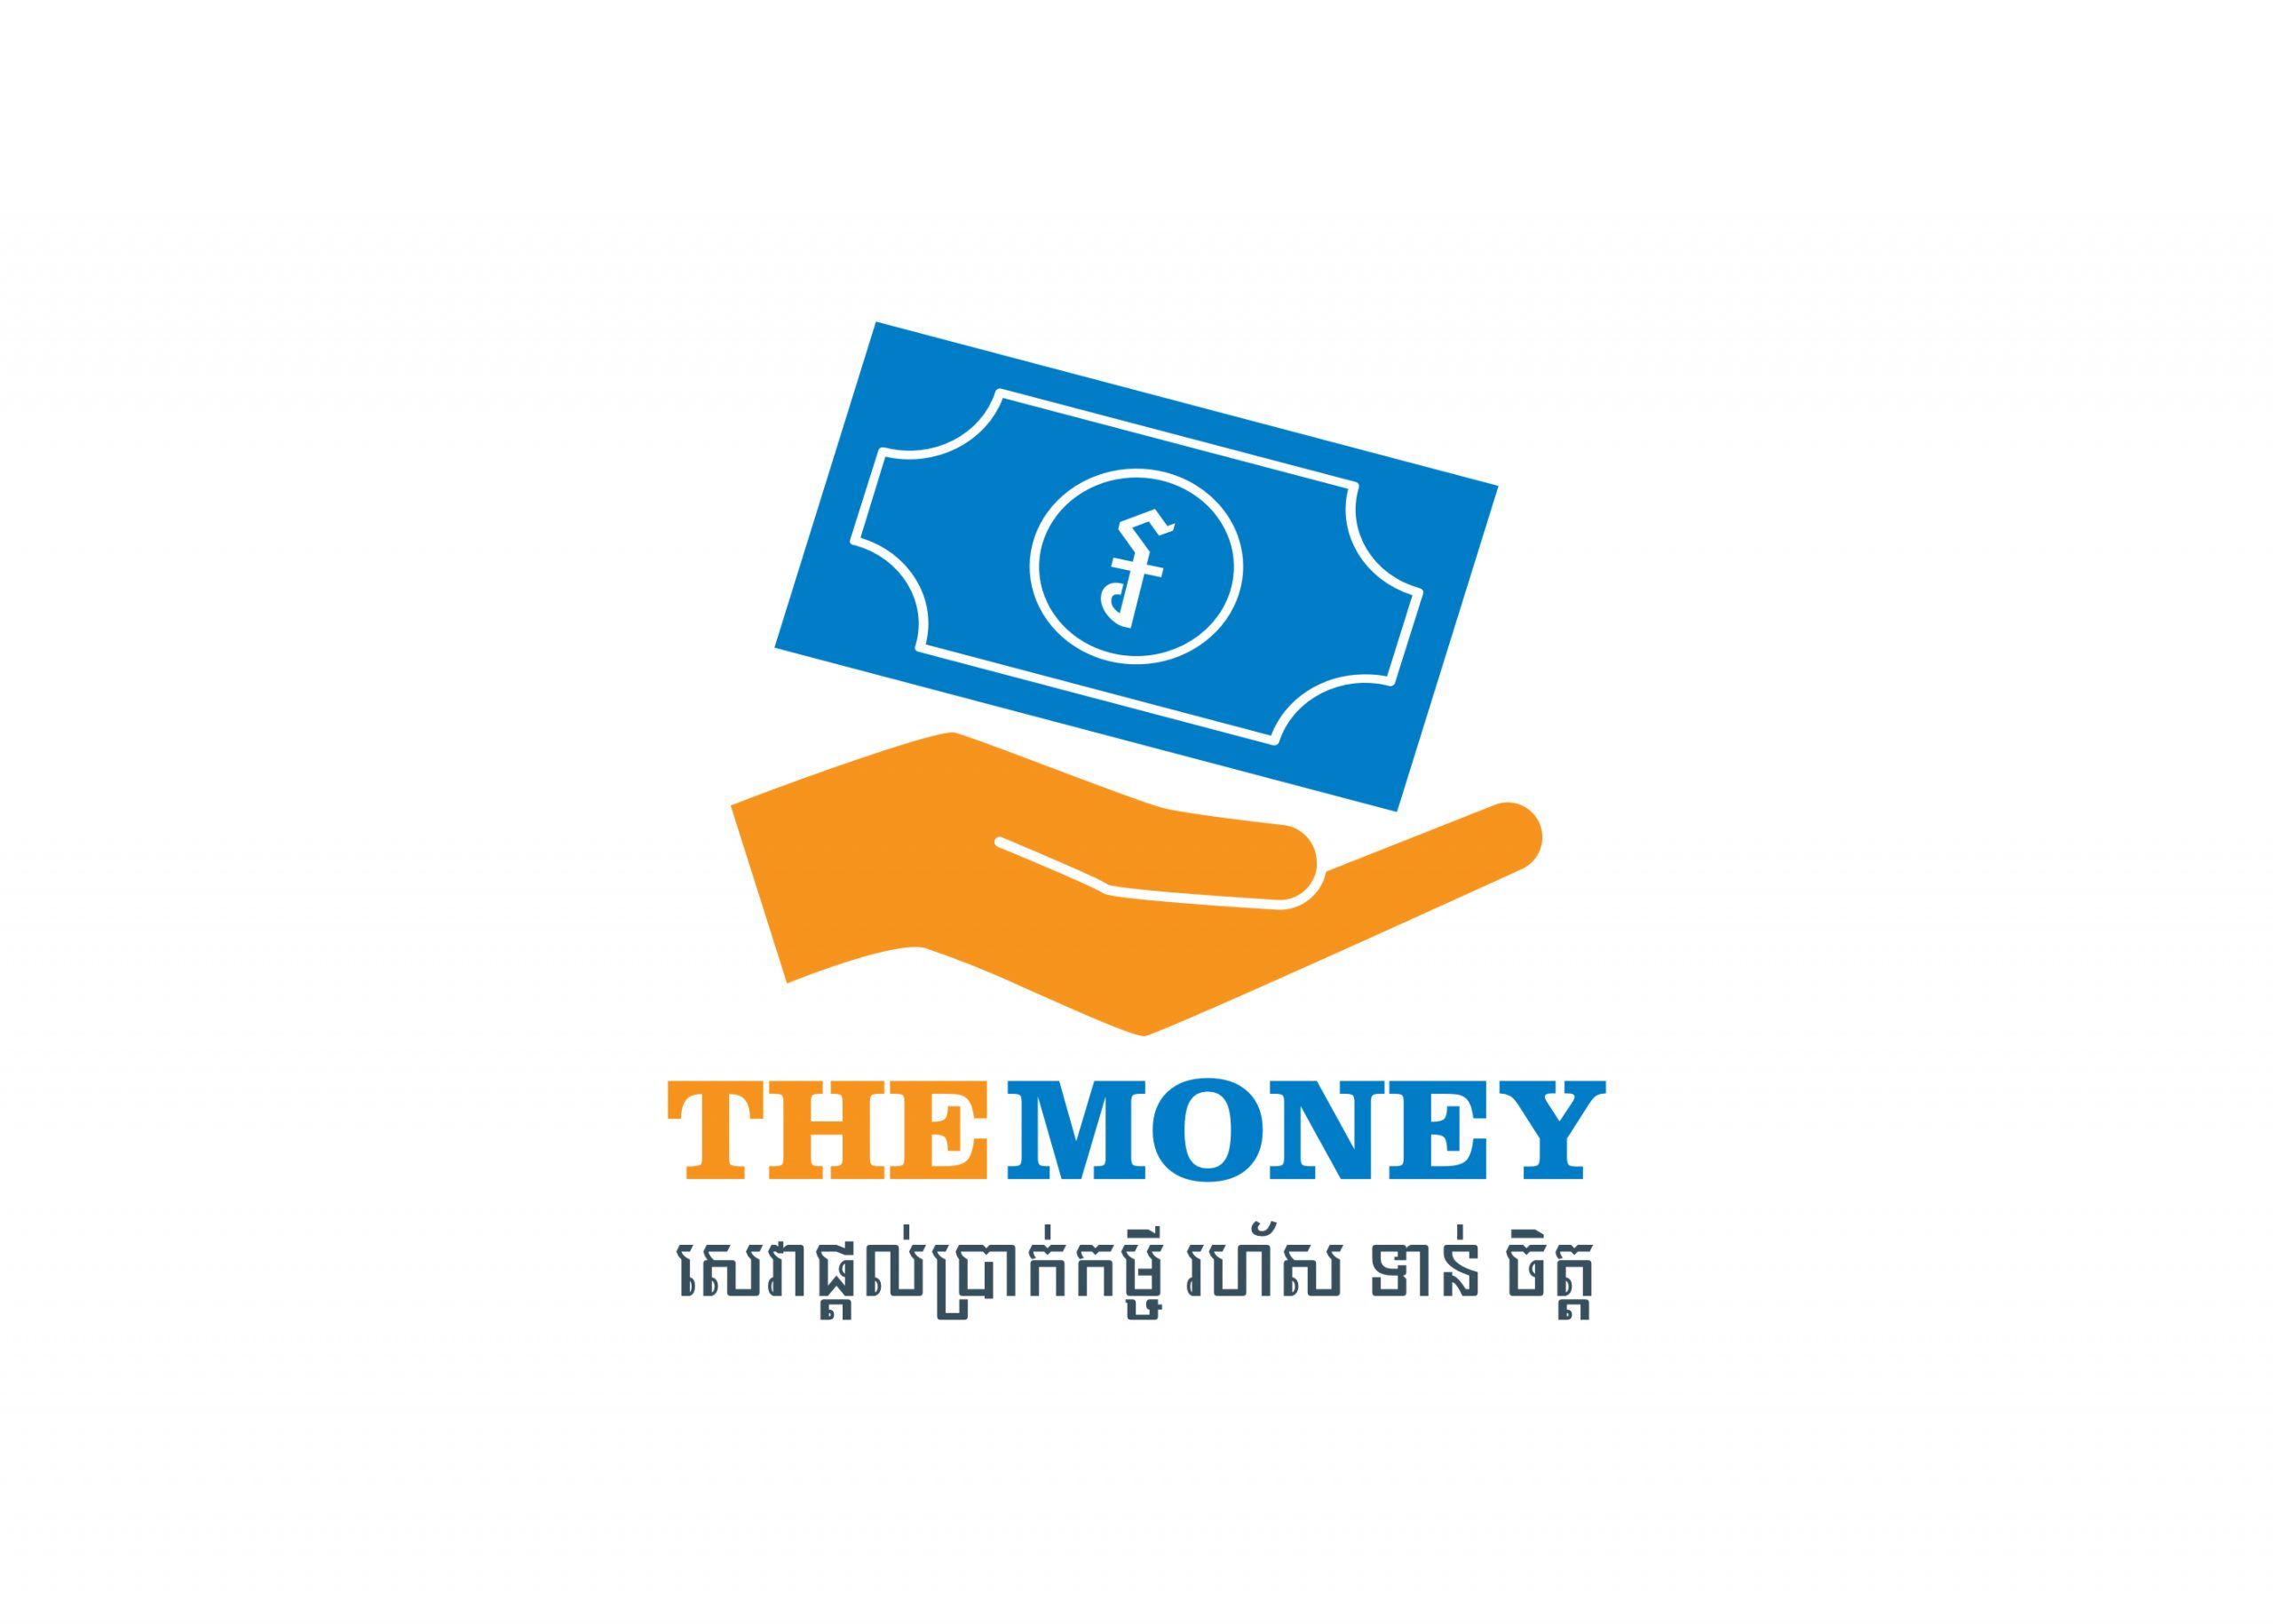 the_money_loan_logo_camapp_logo_design_19_02_21